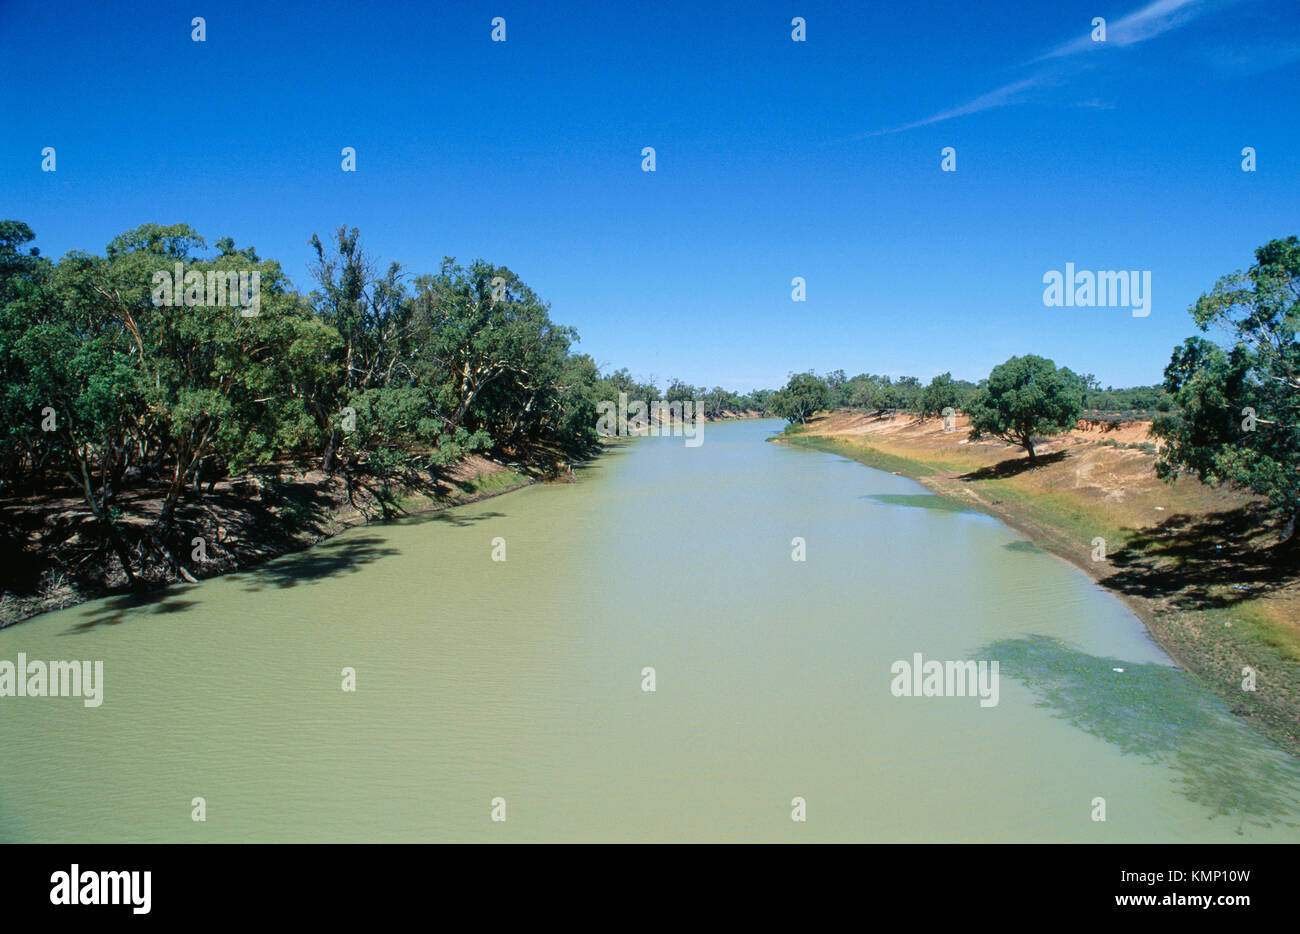 Environment disaster: blue-green algae infests Darling River. Australia - Stock Image